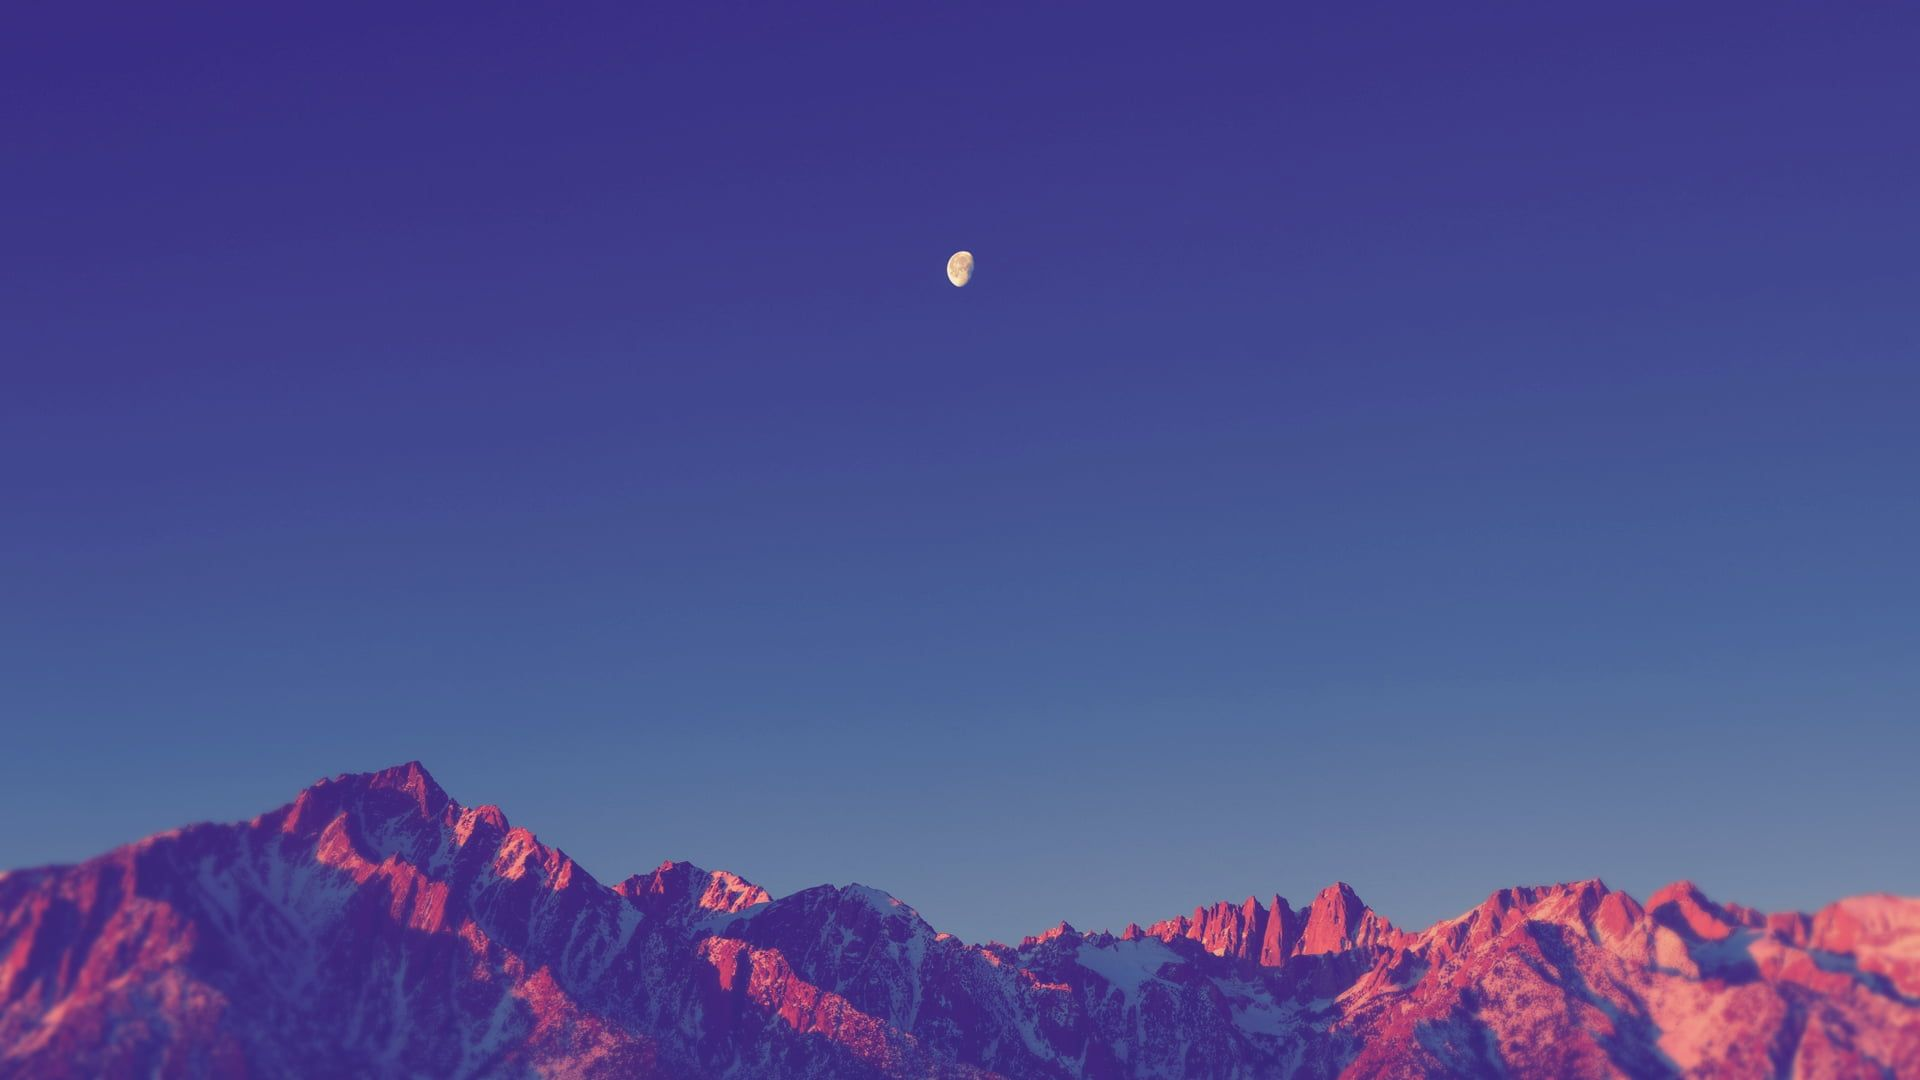 Simple Nature Wallpapers - Top Free ...